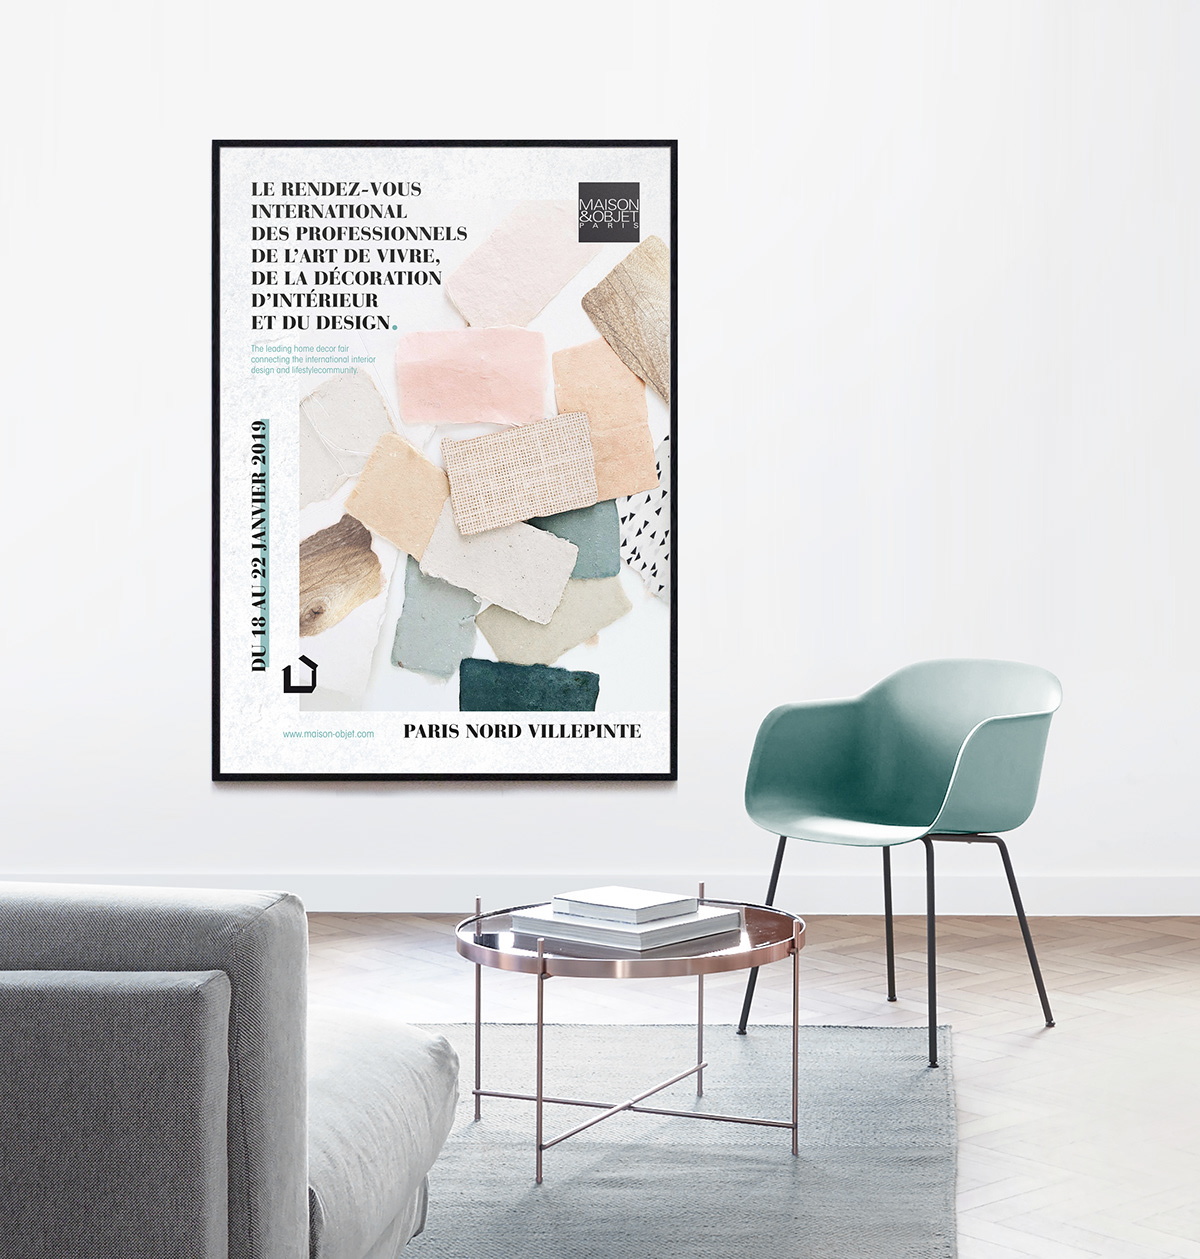 Salon Deco Villepinte Salon Maison Objet Poster Emailing On Behance